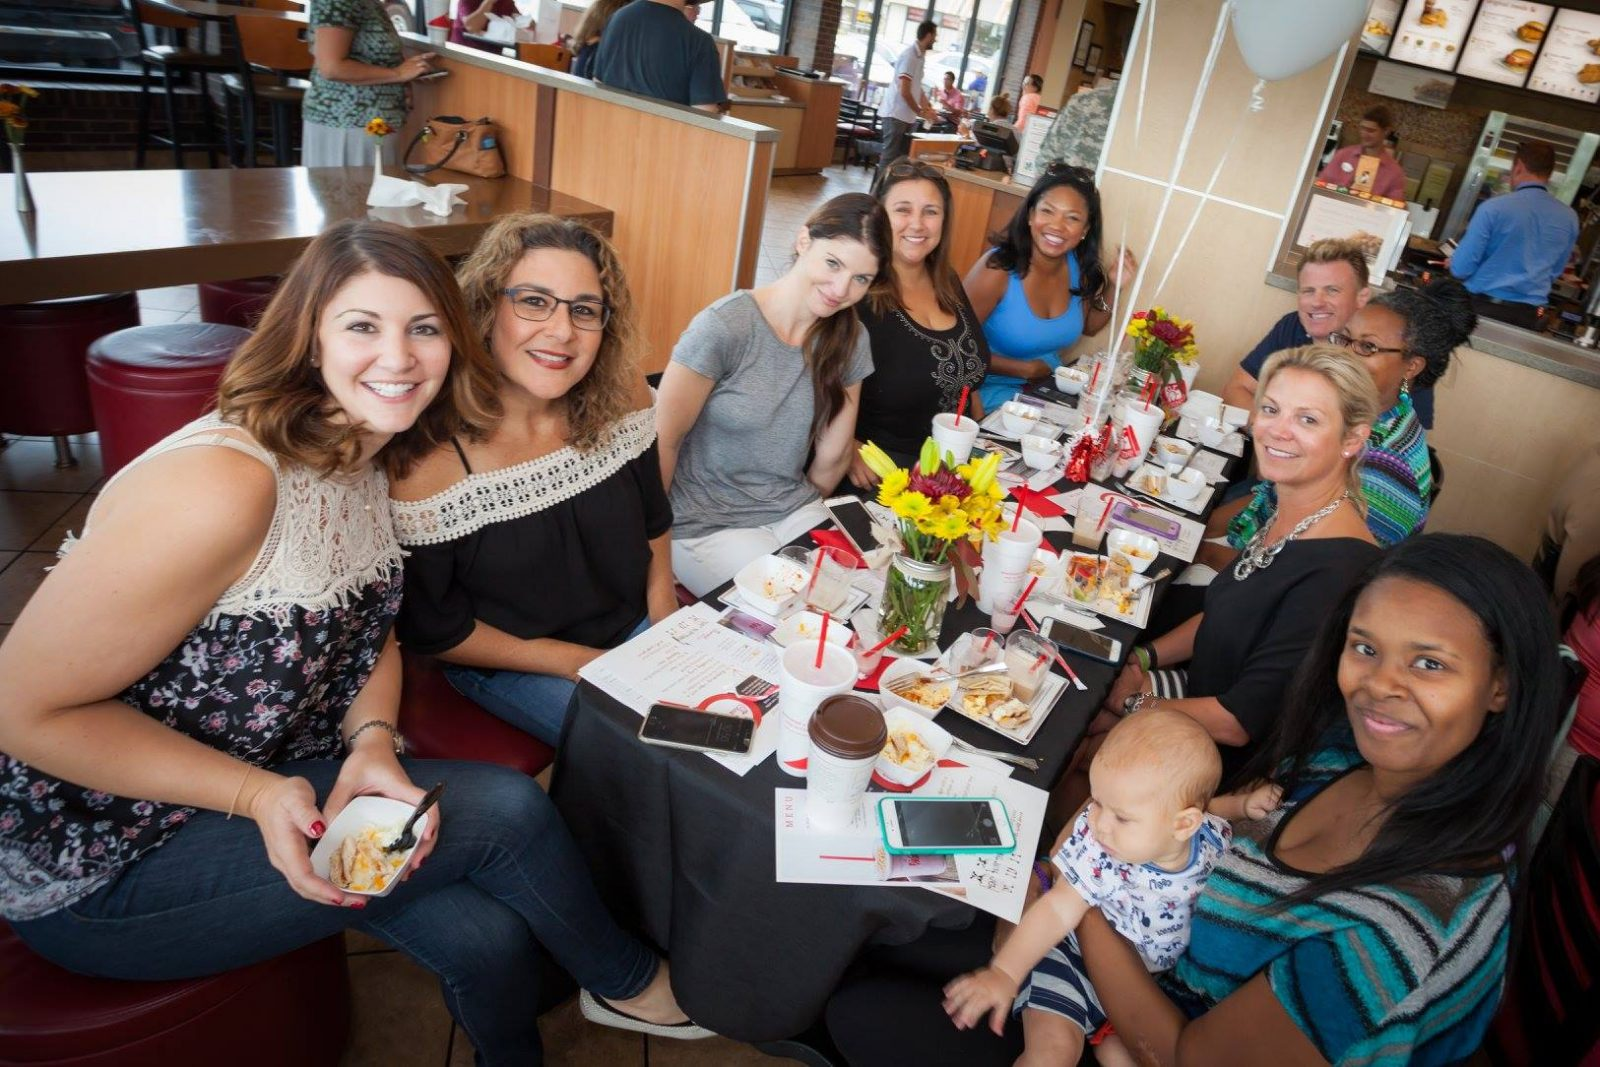 Chick-fil-A Moms Nova Mom Bloggers Event New Breakfast Menu Seven Corners